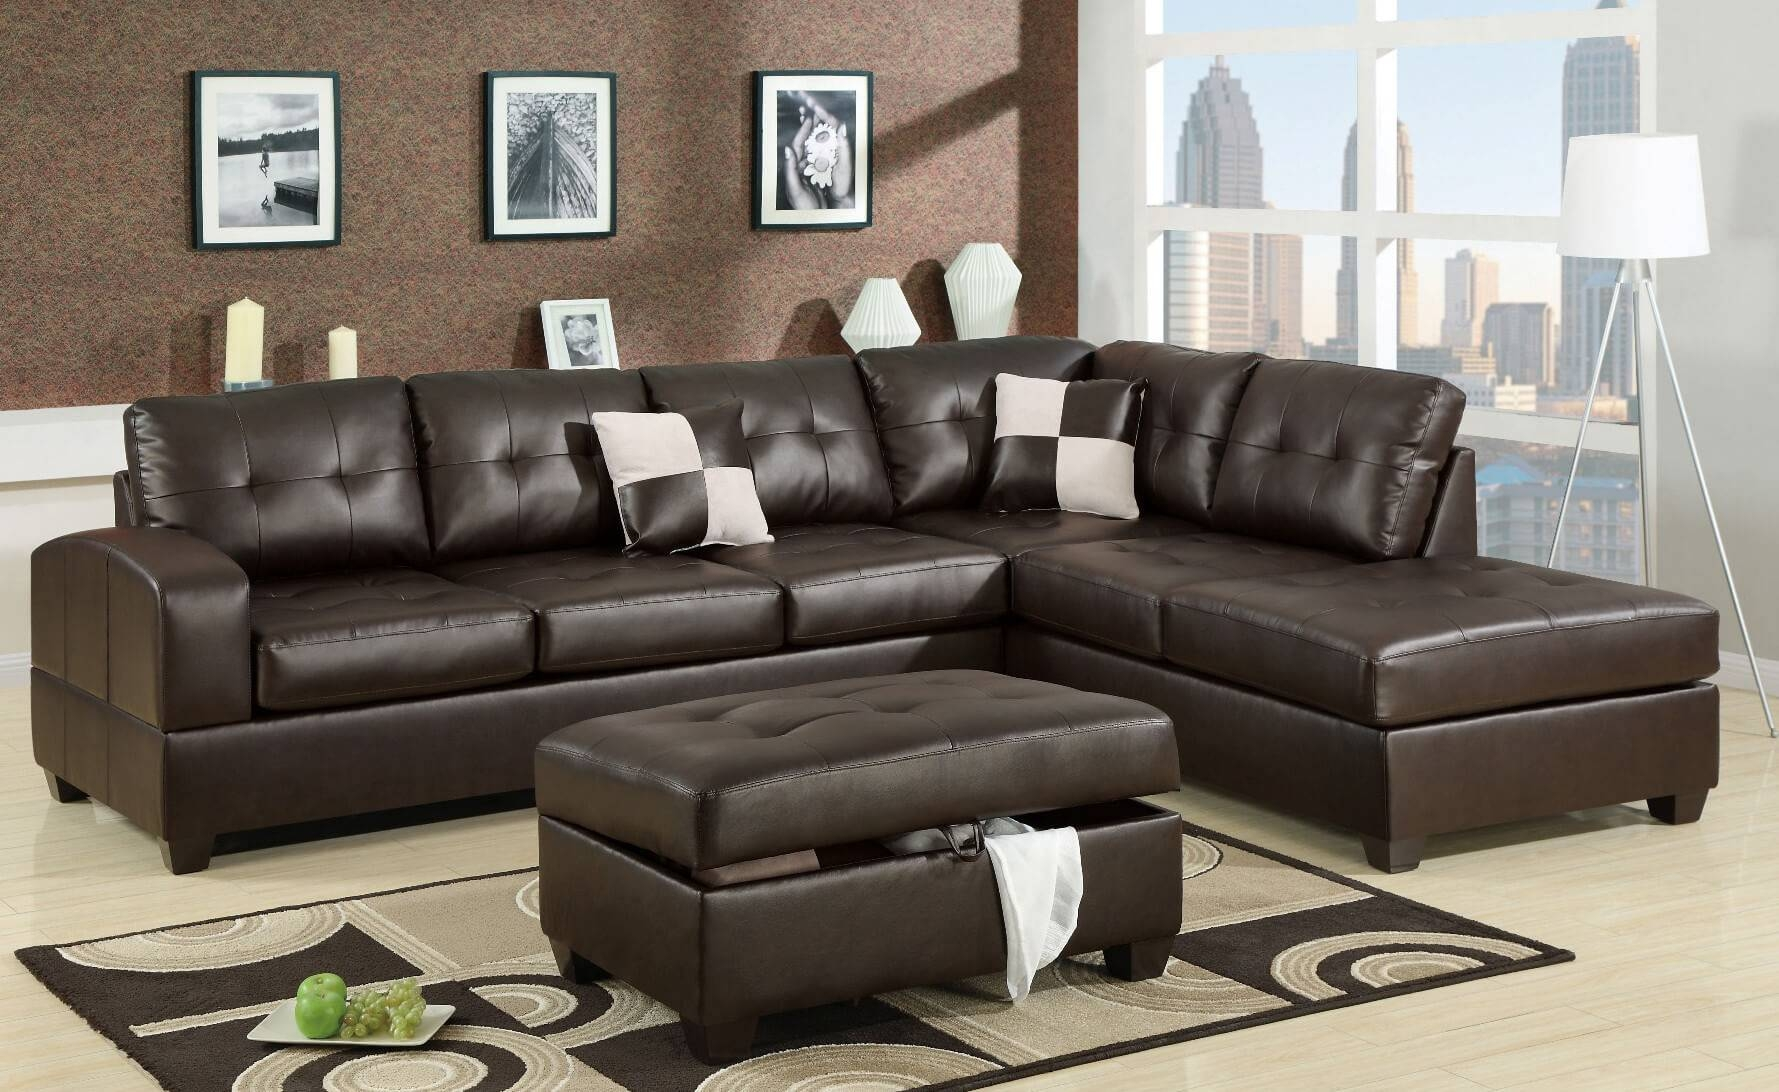 100 Beautiful Sectional Sofas Under $1,000 within Affordable Tufted Sofa (Image 1 of 30)